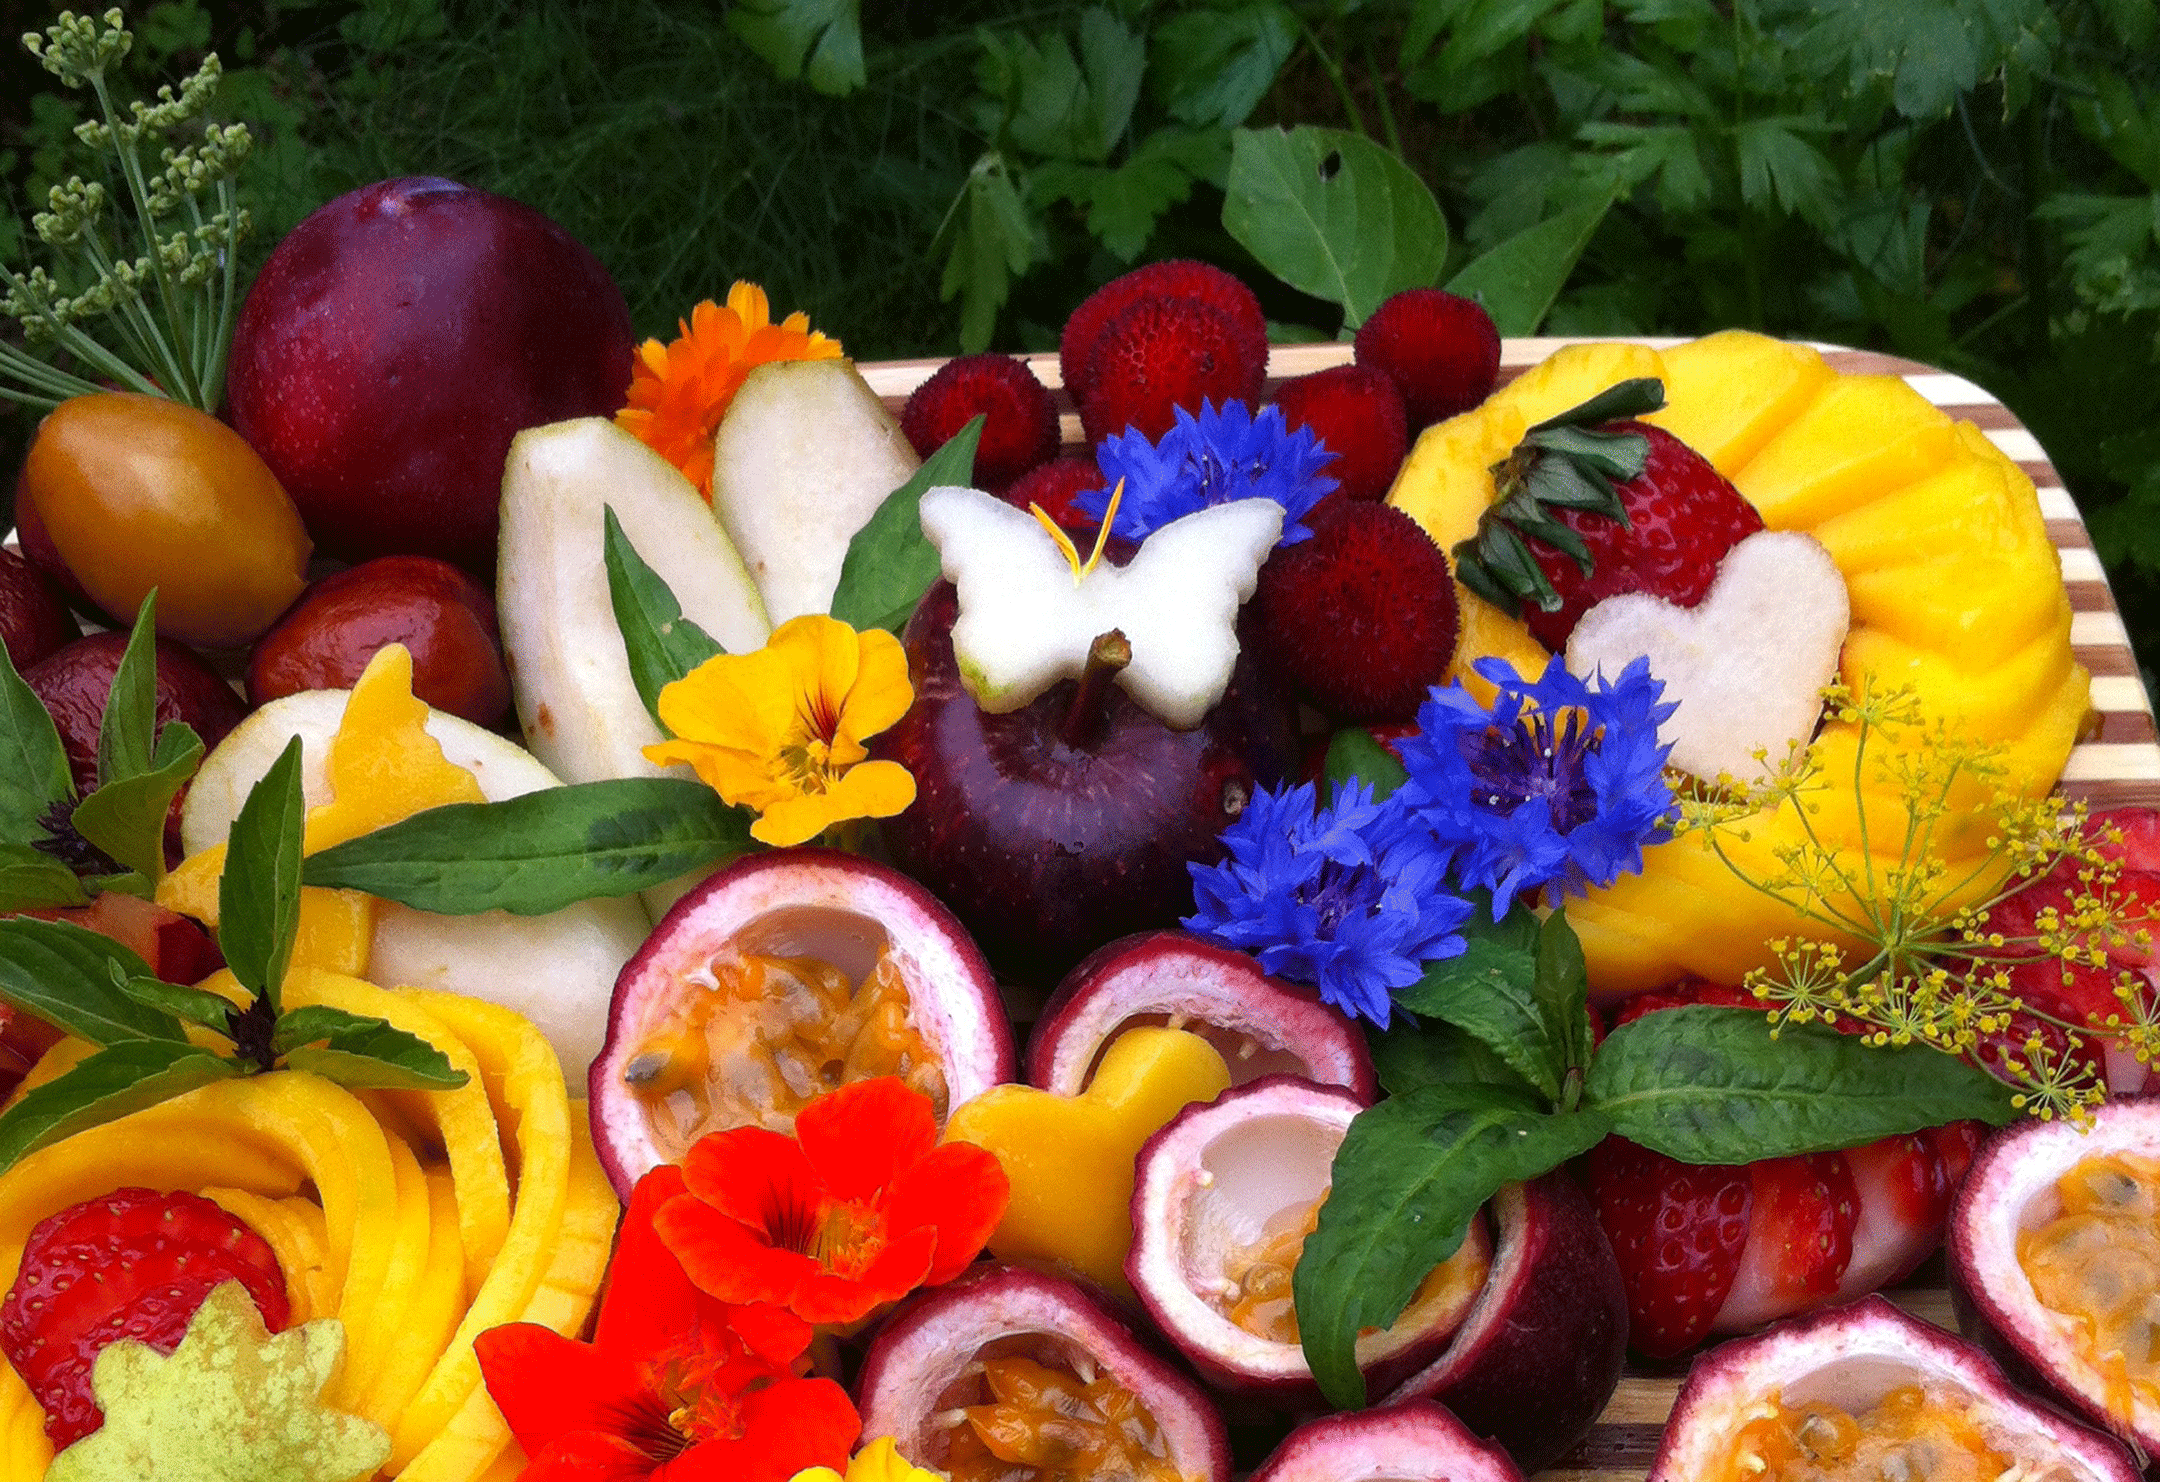 Beautiful fruit platter with tropical and non-tropical fruits, edible flowers, and heart and butterfly shapes cut out of fruit.